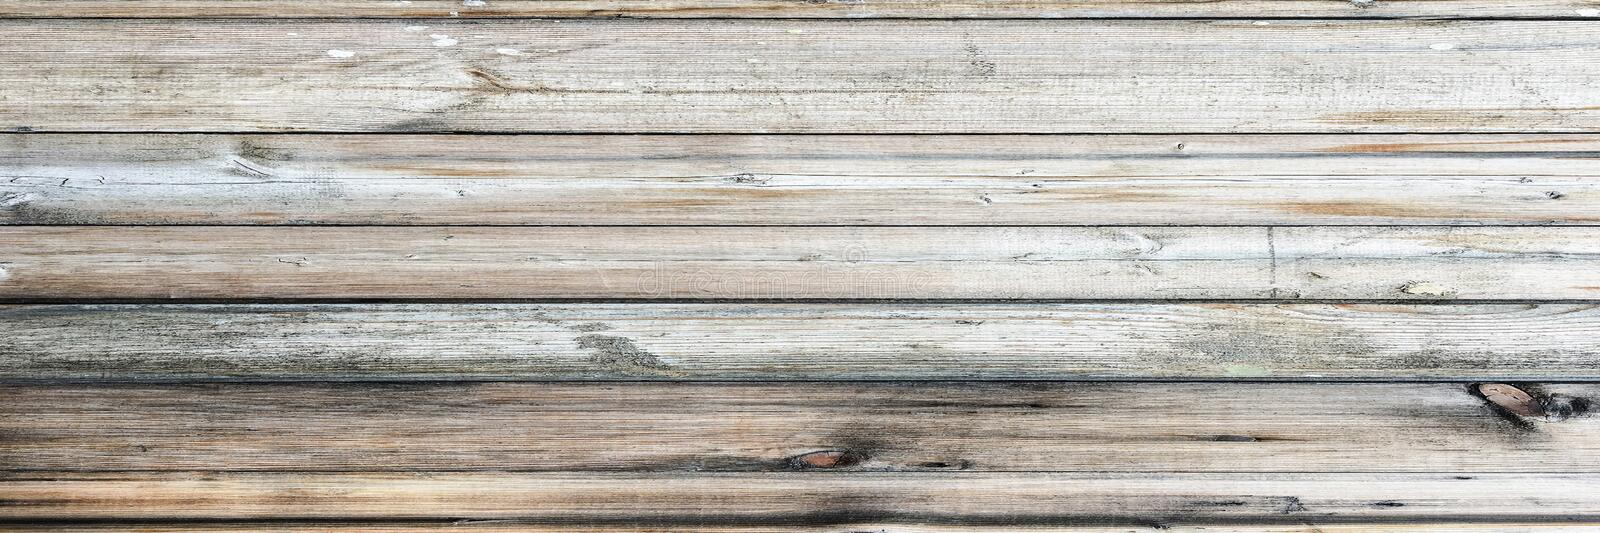 Wood texture background, wood planks. Grunge wood, painted wooden wall pattern. Wood texture background, wood planks. Grunge wood, painted wooden wall pattern stock photo